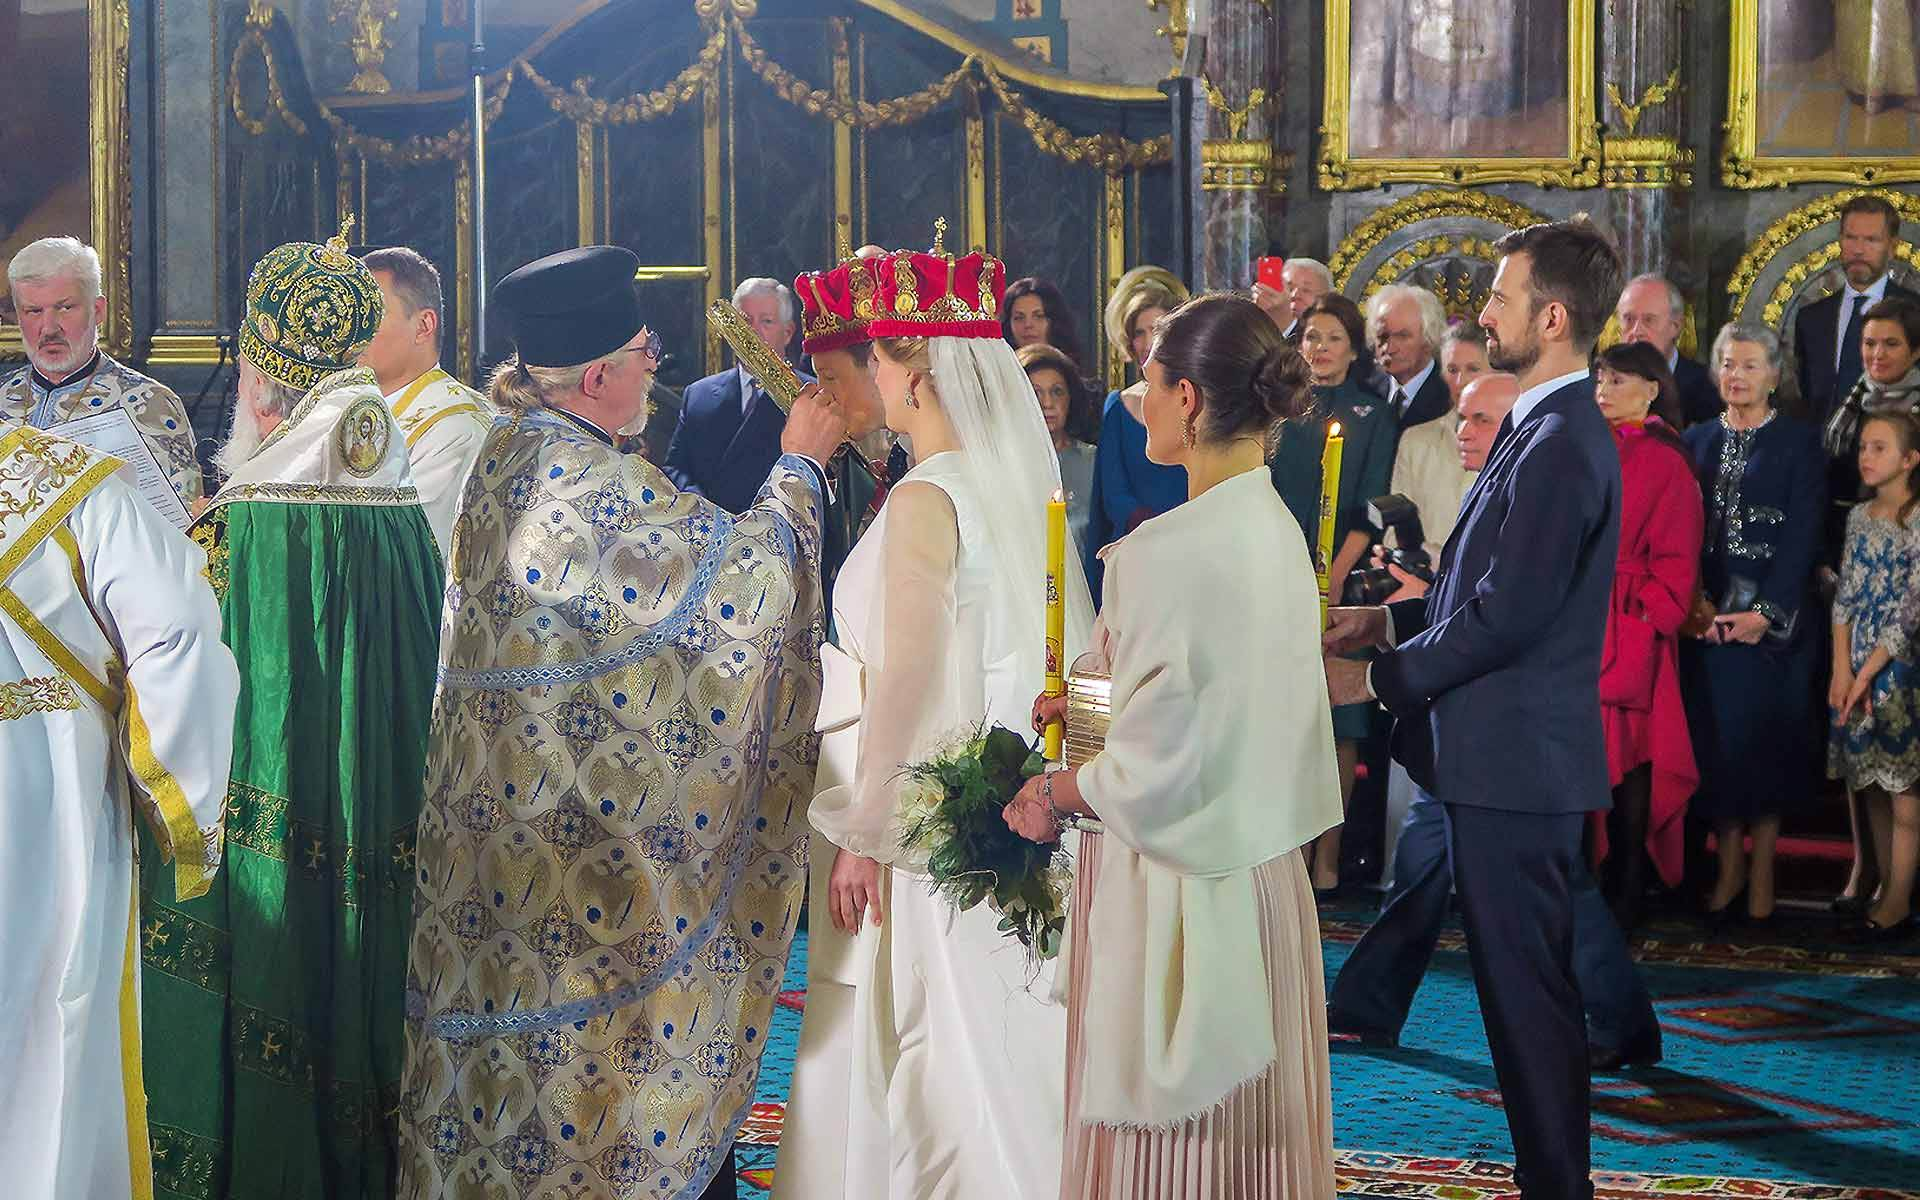 A-Royal-wedding-of-Prince-Philip-of-Serbia-and-Danica-Marinkovic-in-Serbia